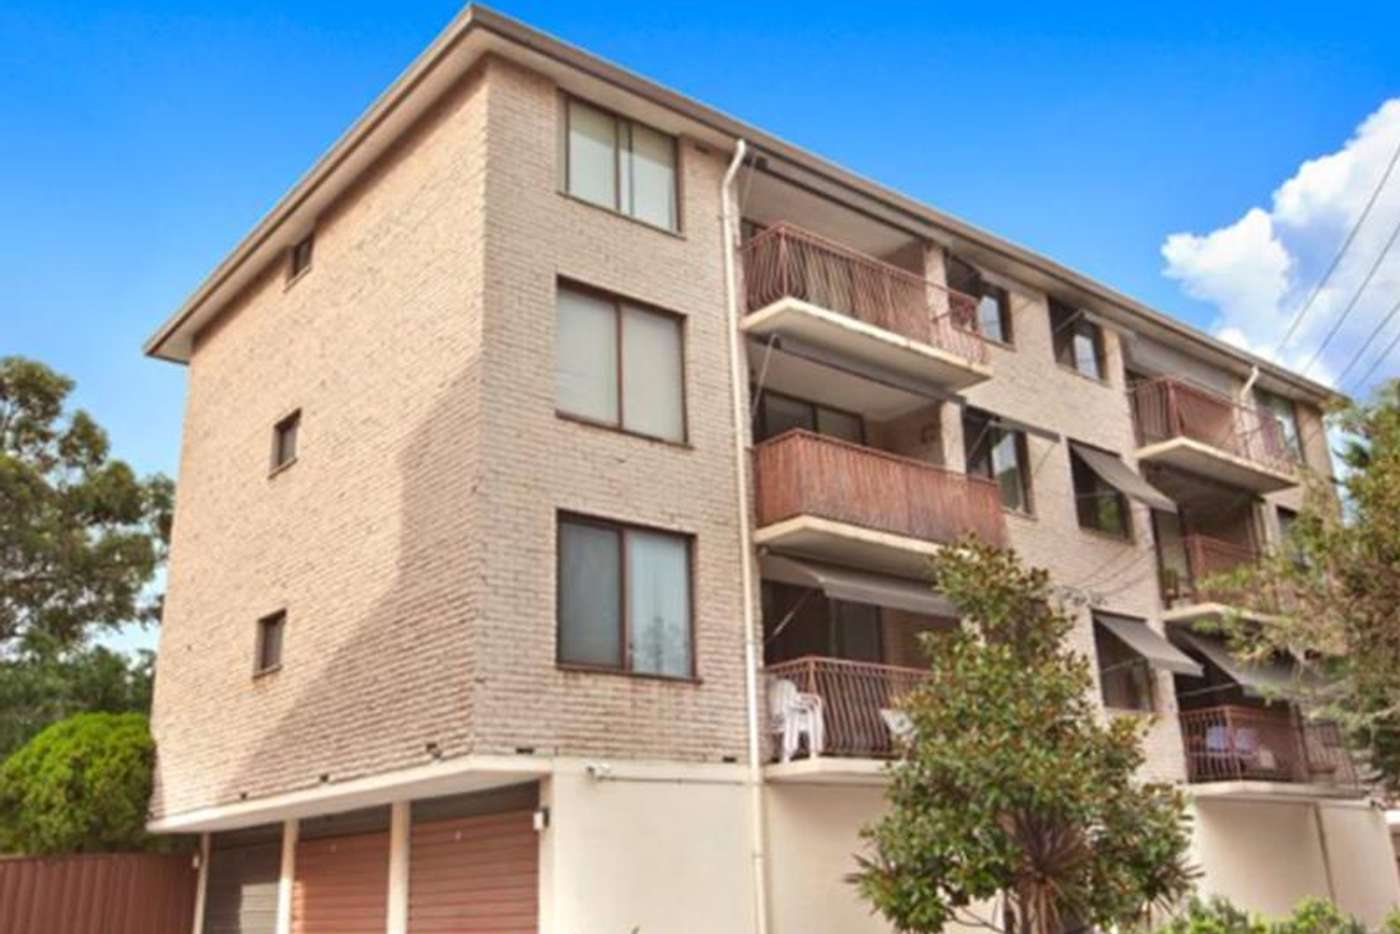 Seventh view of Homely apartment listing, 13/3 Lorne Avenue, Kensington NSW 2033